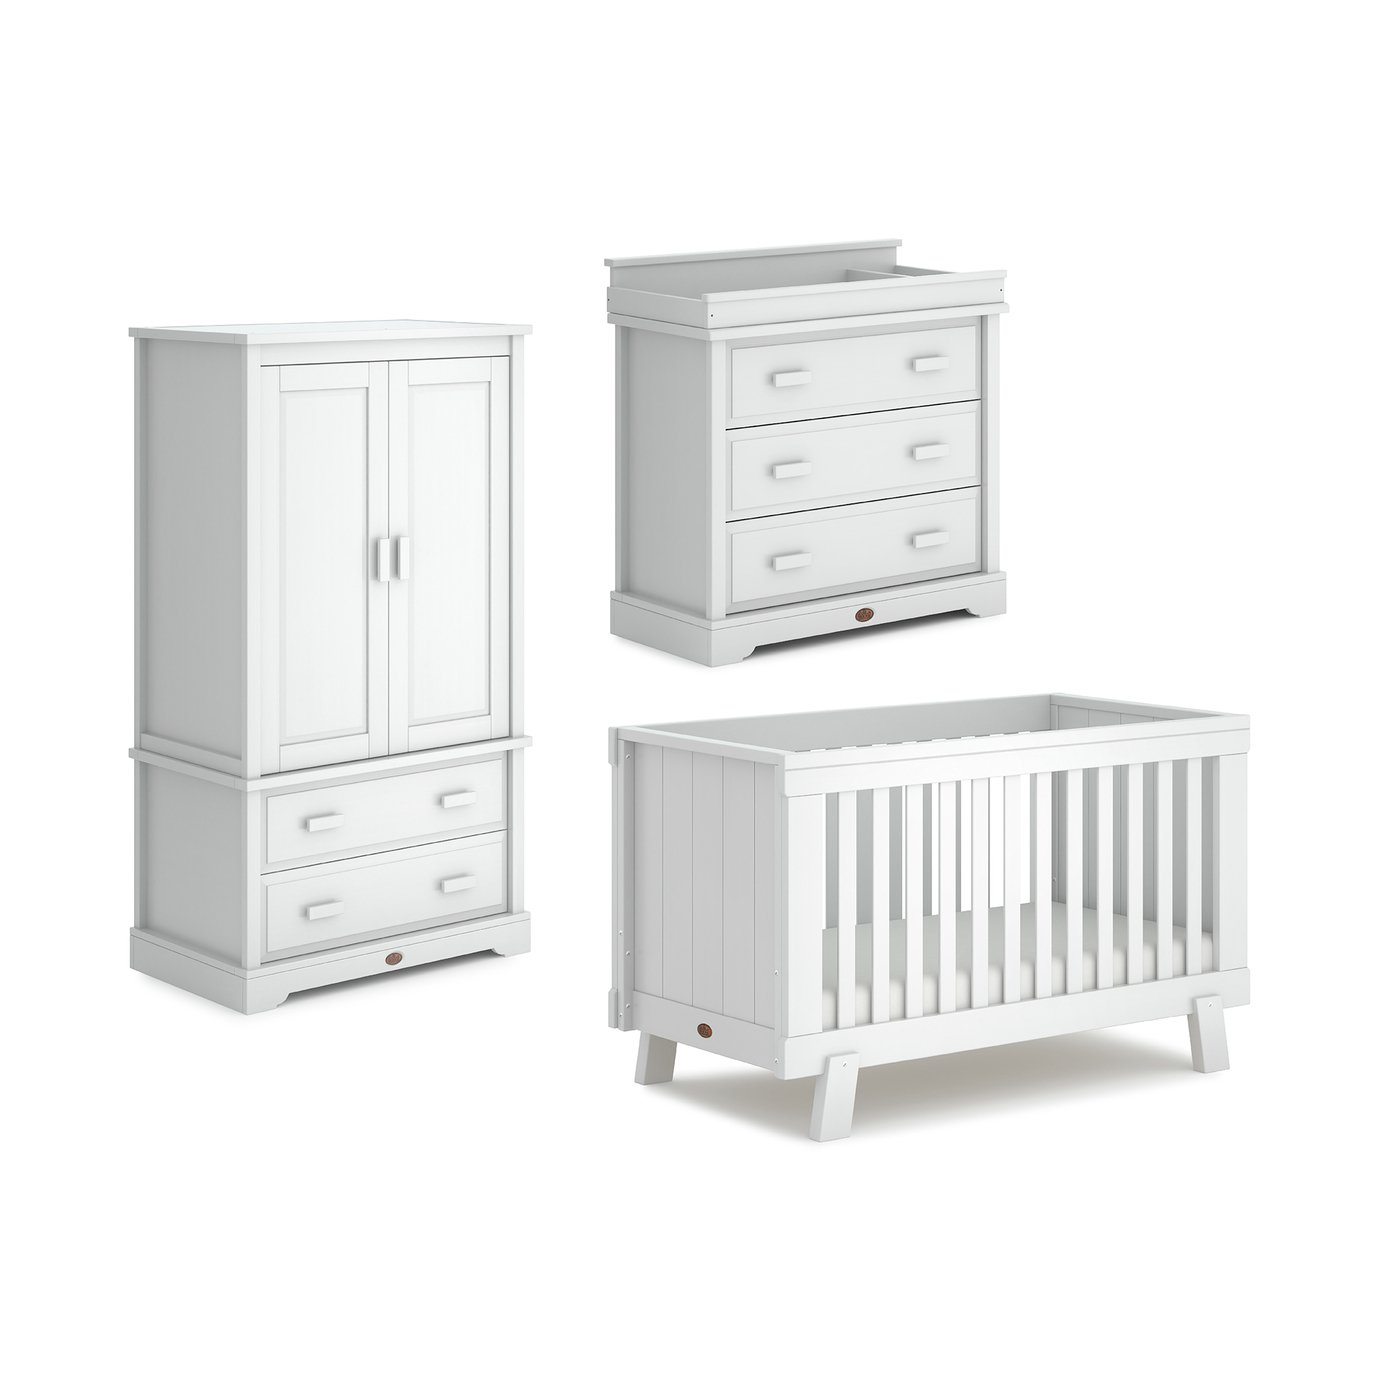 Boori Lucia 3 Piece Room Set - White